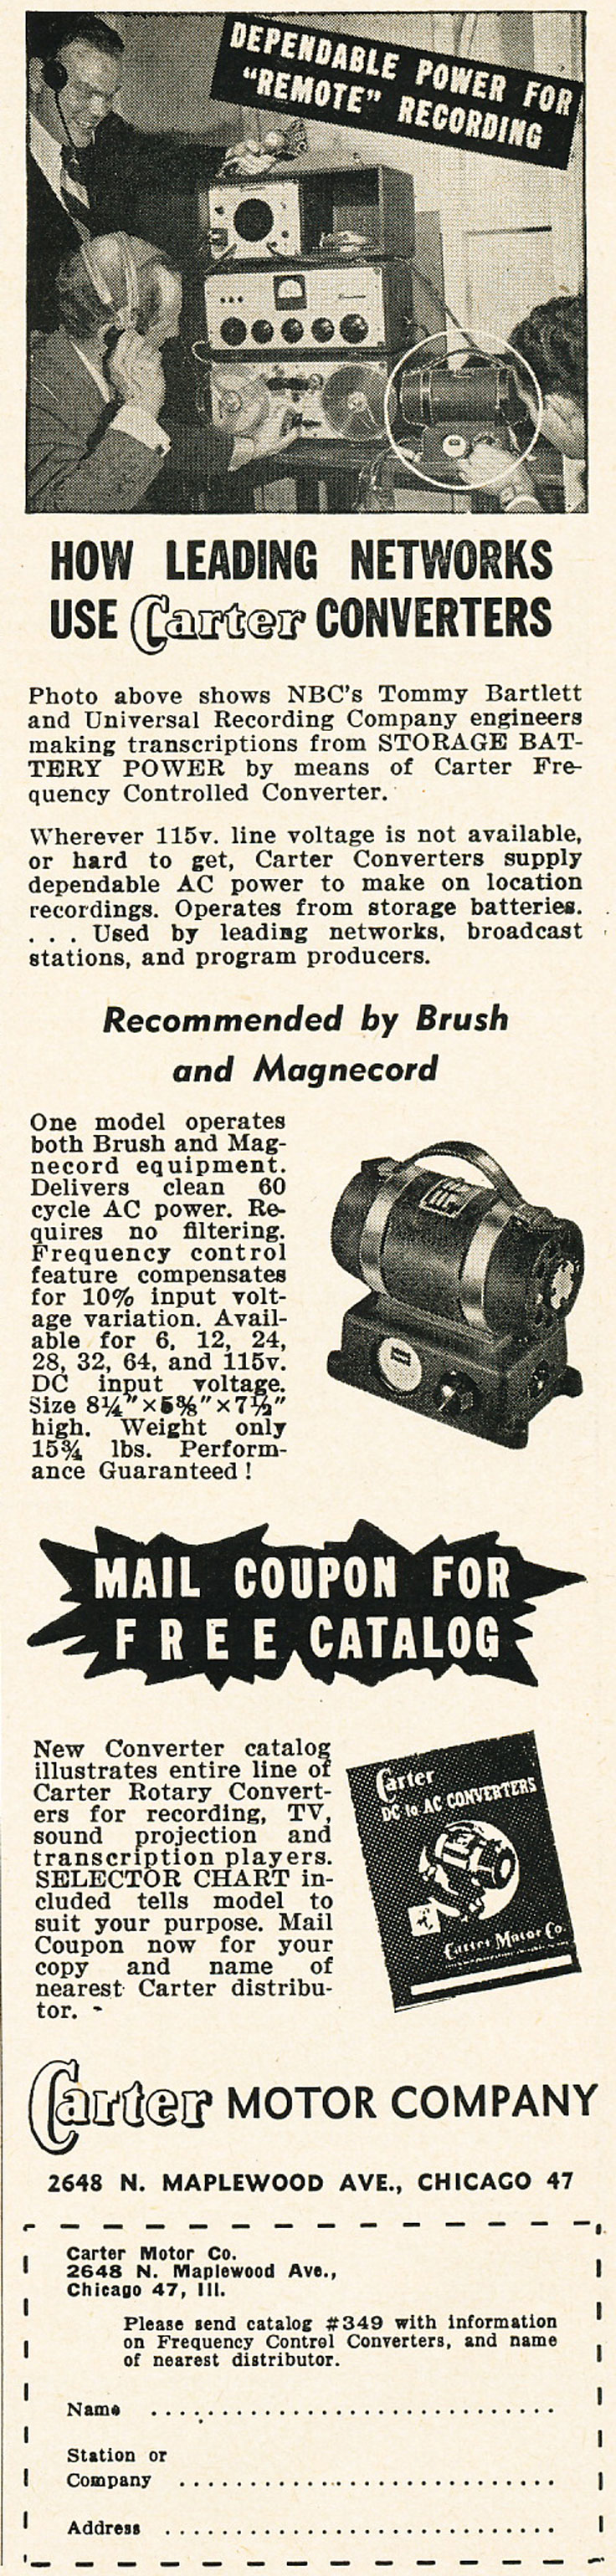 1952 Carter Motor Company ad showing a Magnecord reel tape recorder in   Reel2ReelTexas.com's vintage recording collection